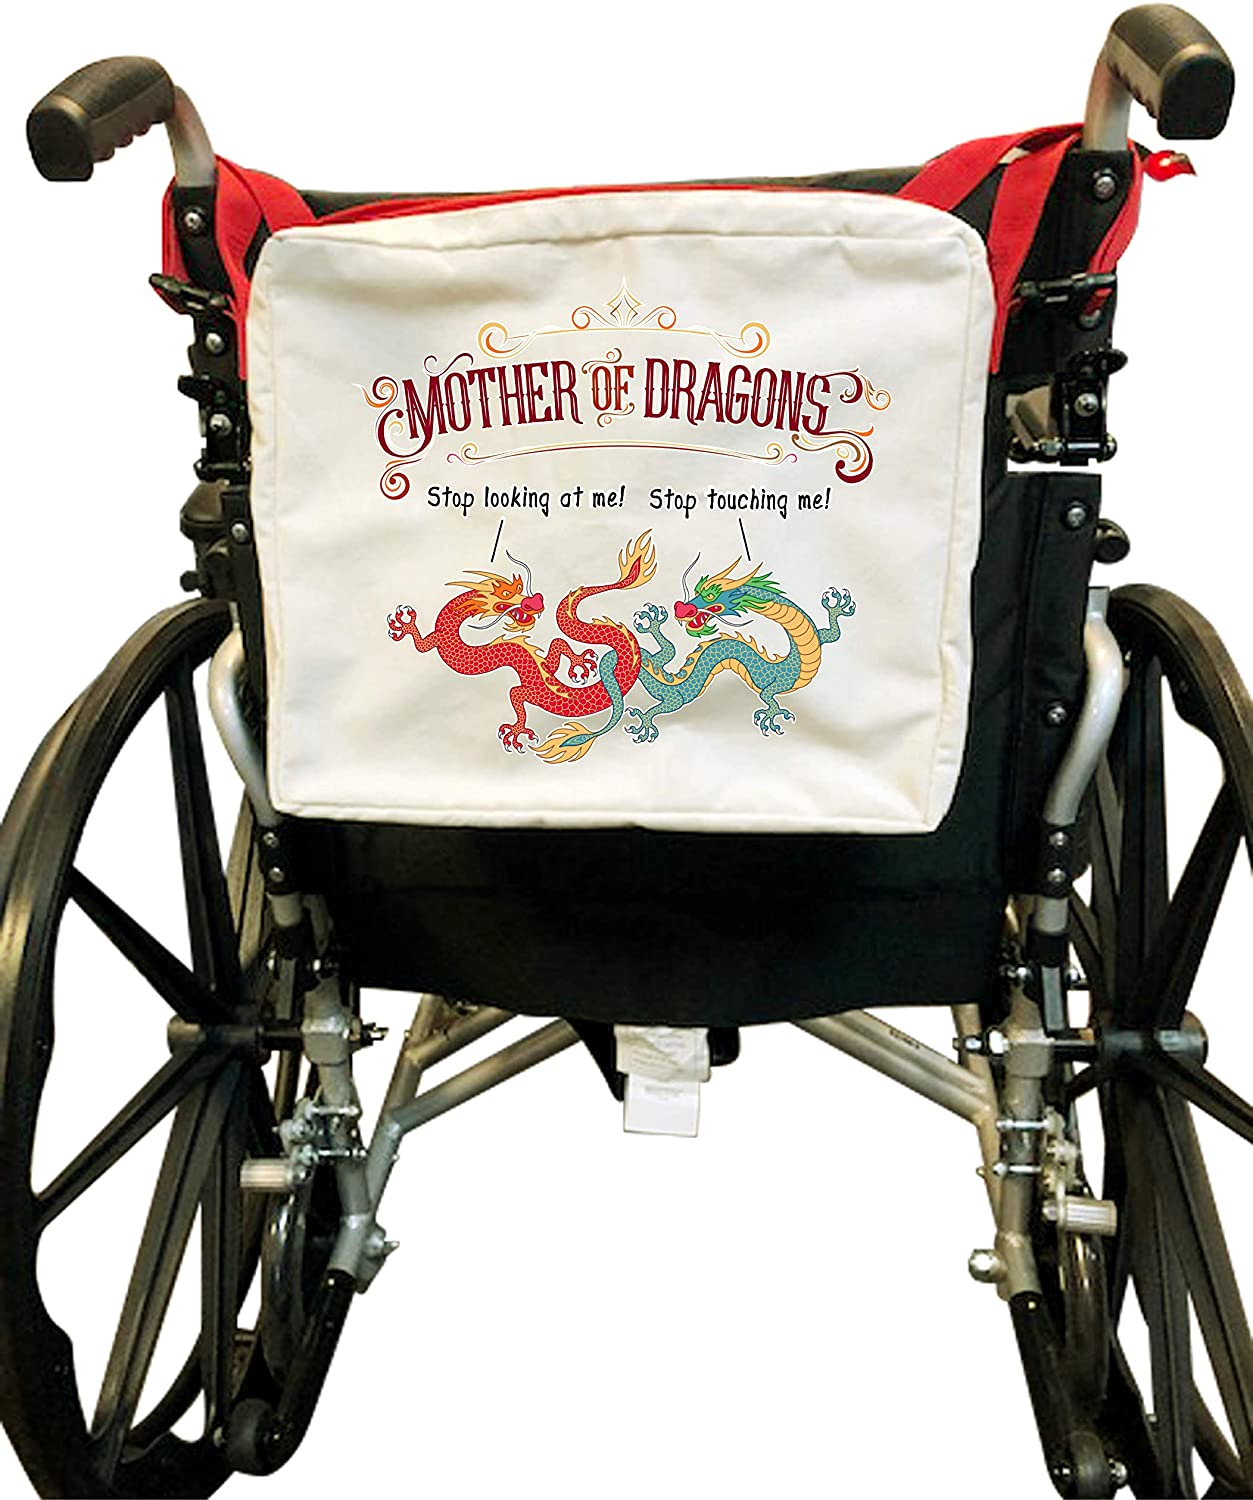 Mother of Dragons - Red Handed Wheelchair/Walker Bag (Bag Only)